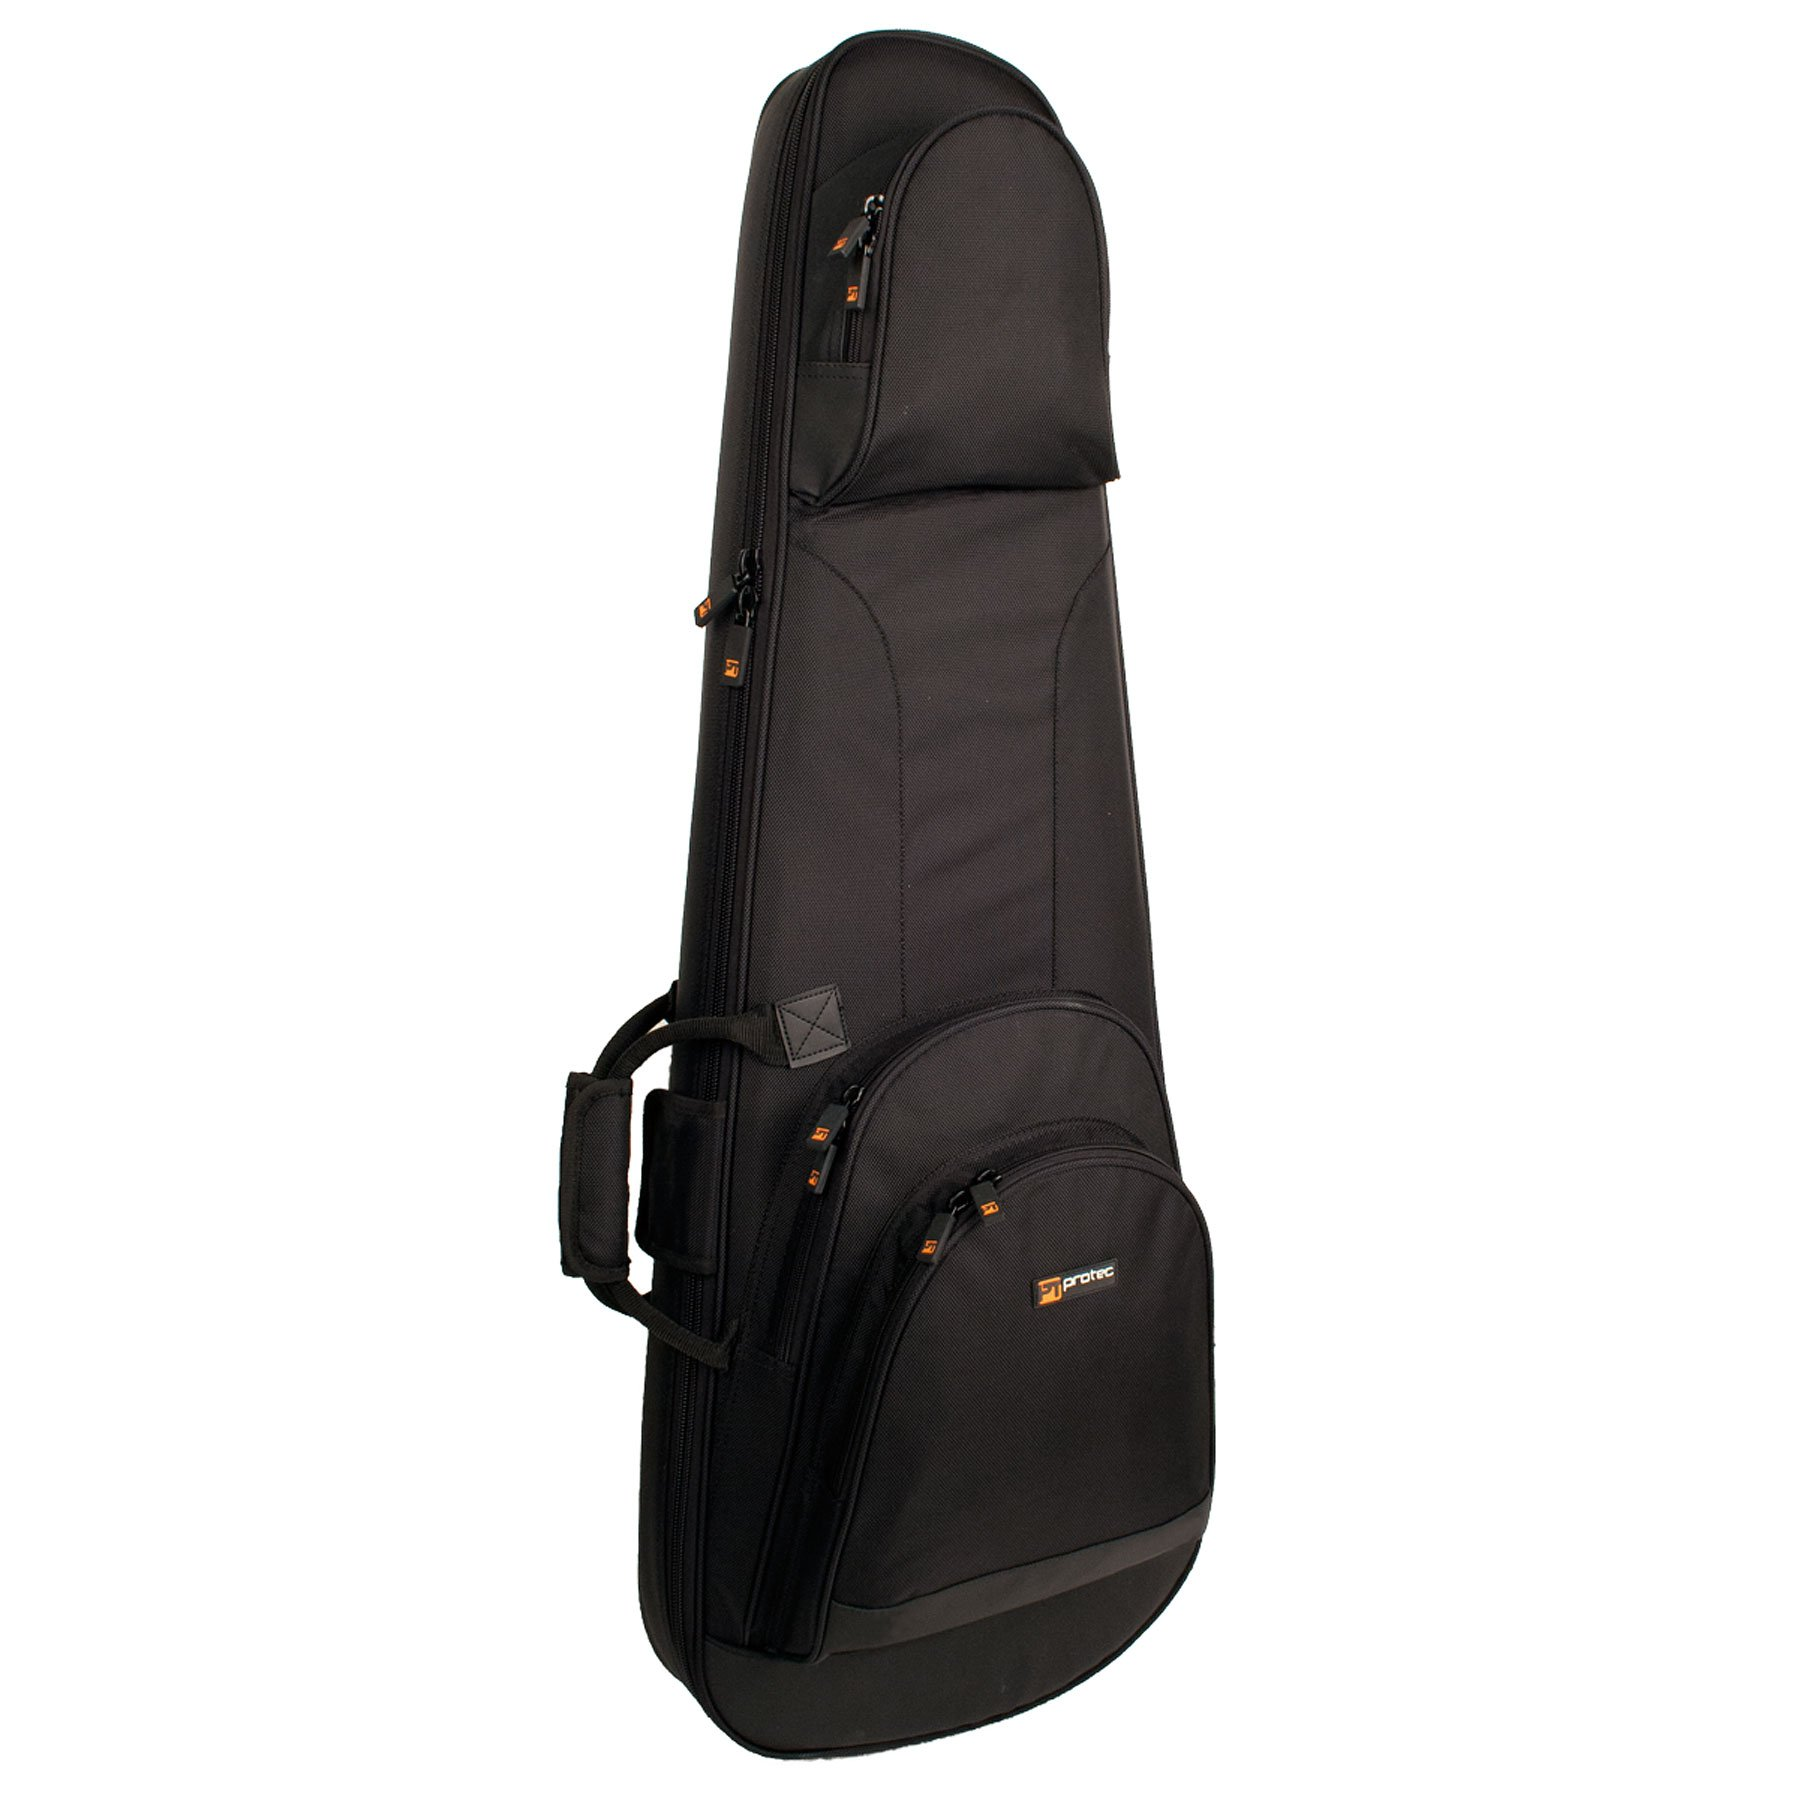 Protec CTG234 Electric Guitar Contego PRO PAC Case (Strat/Tele Type Guitars) by ProTec